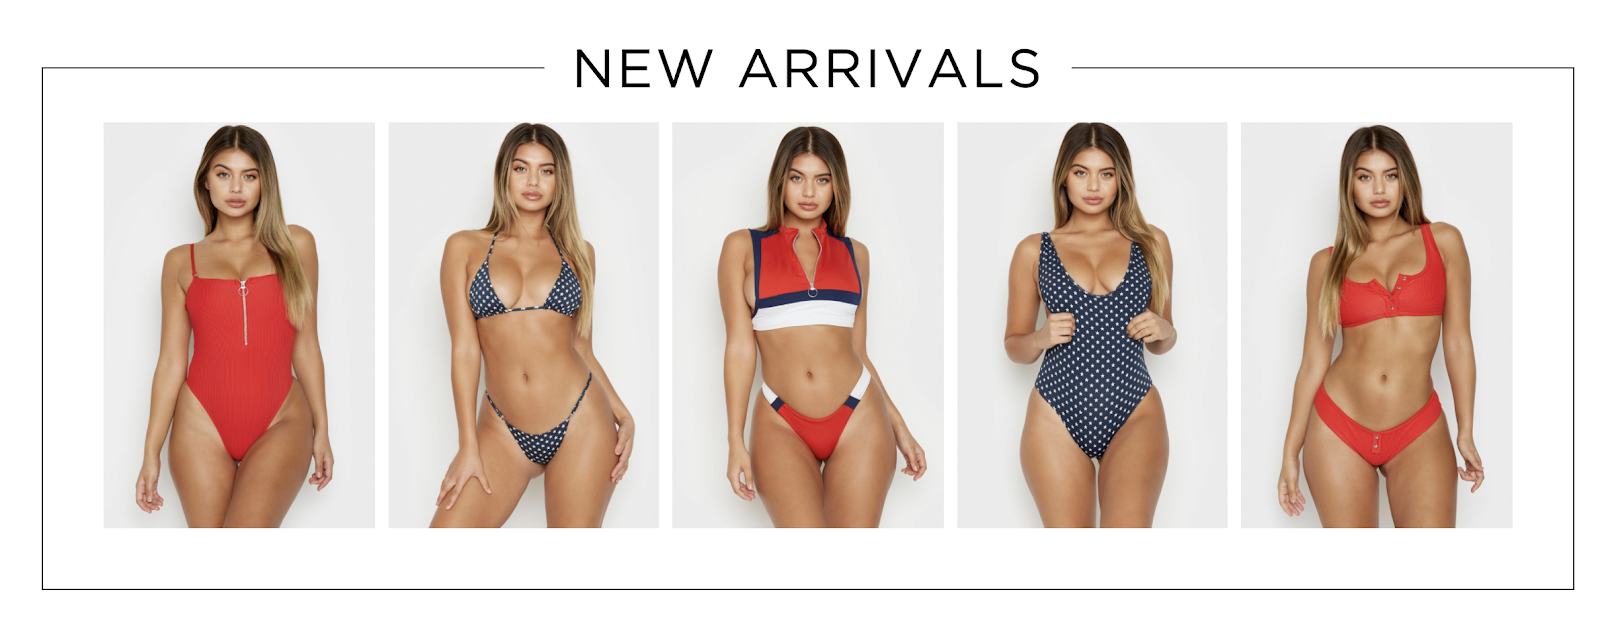 9b838f0f9324c Pacsun (https://www.pacsun.com/womens/swimwear/) - Pacsun has a great and  fairly affordable bikini line, they are sold in separated but are a fair  price.